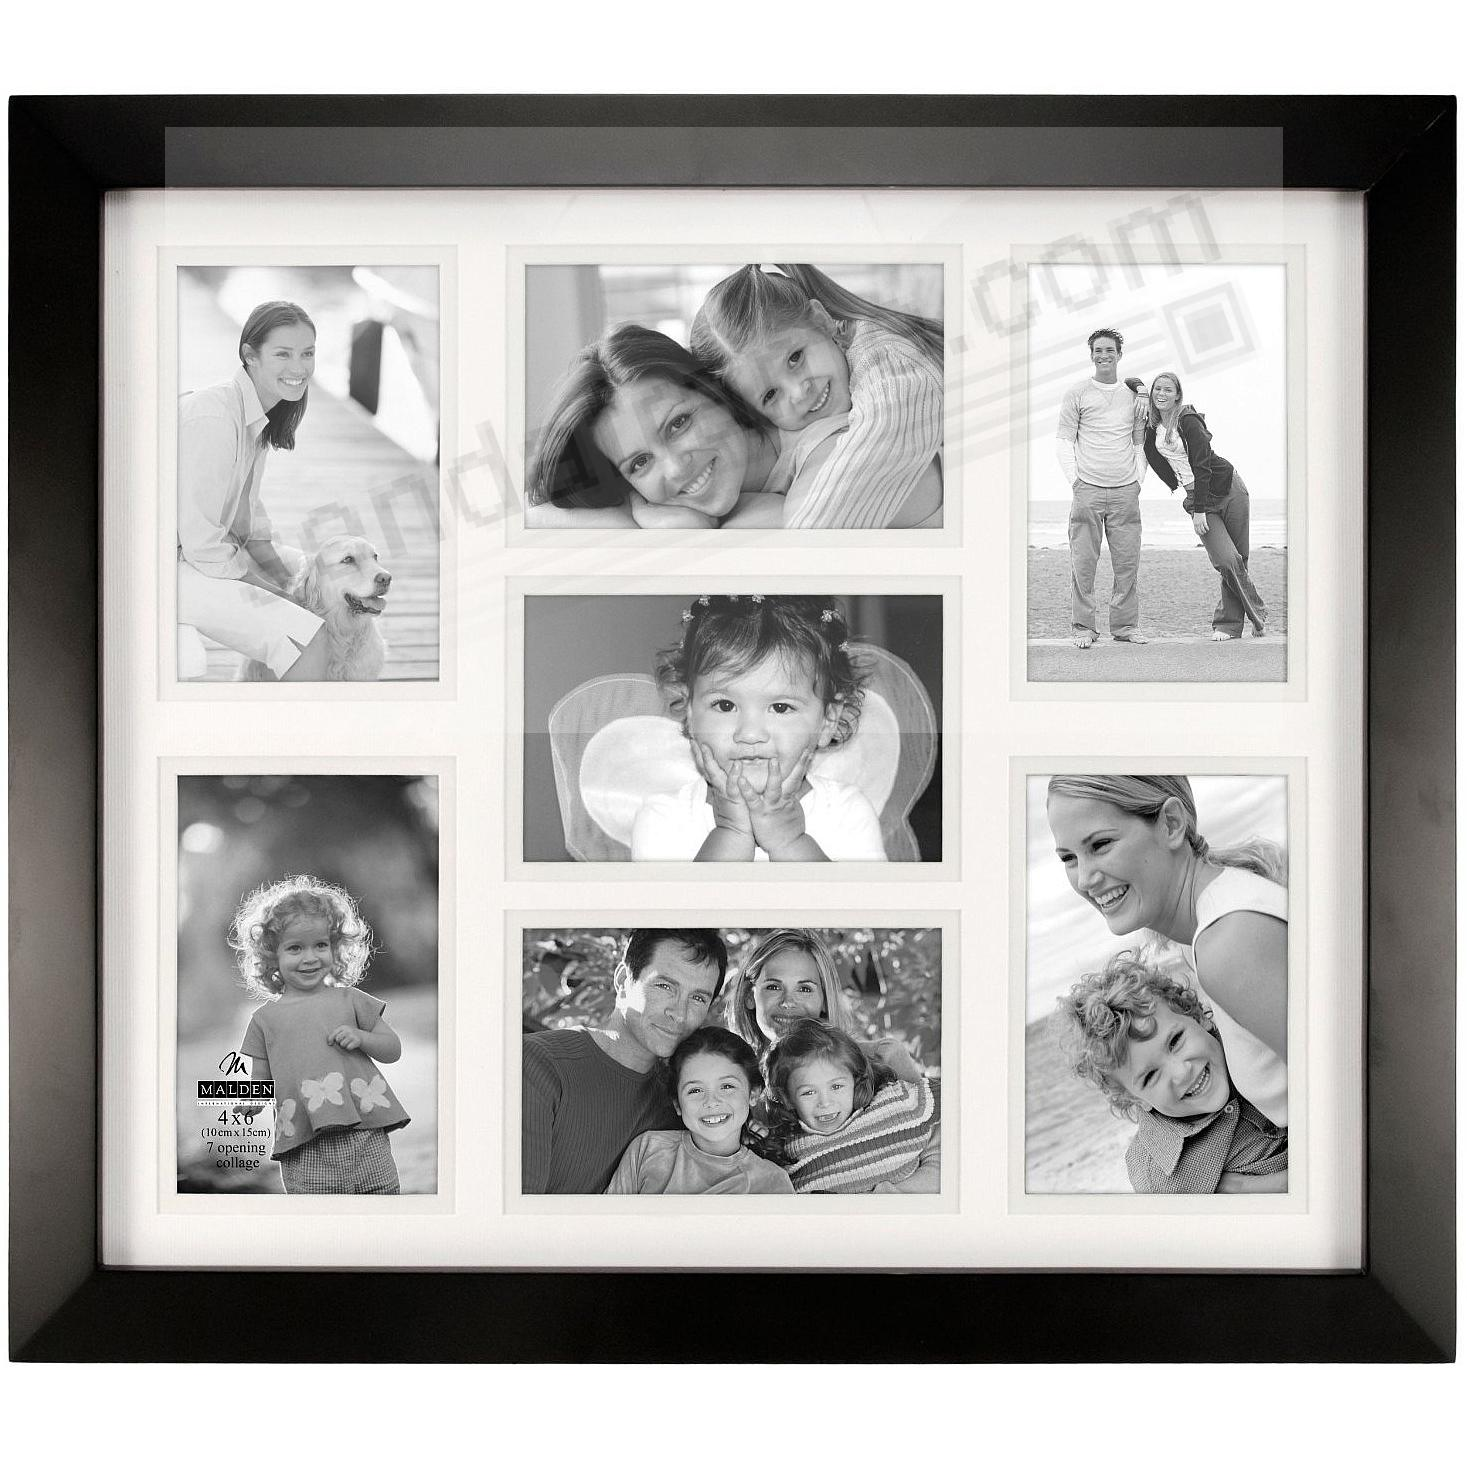 Black Berkeley Matted Collagebrdisplays 7 4x6 Photos By Malden